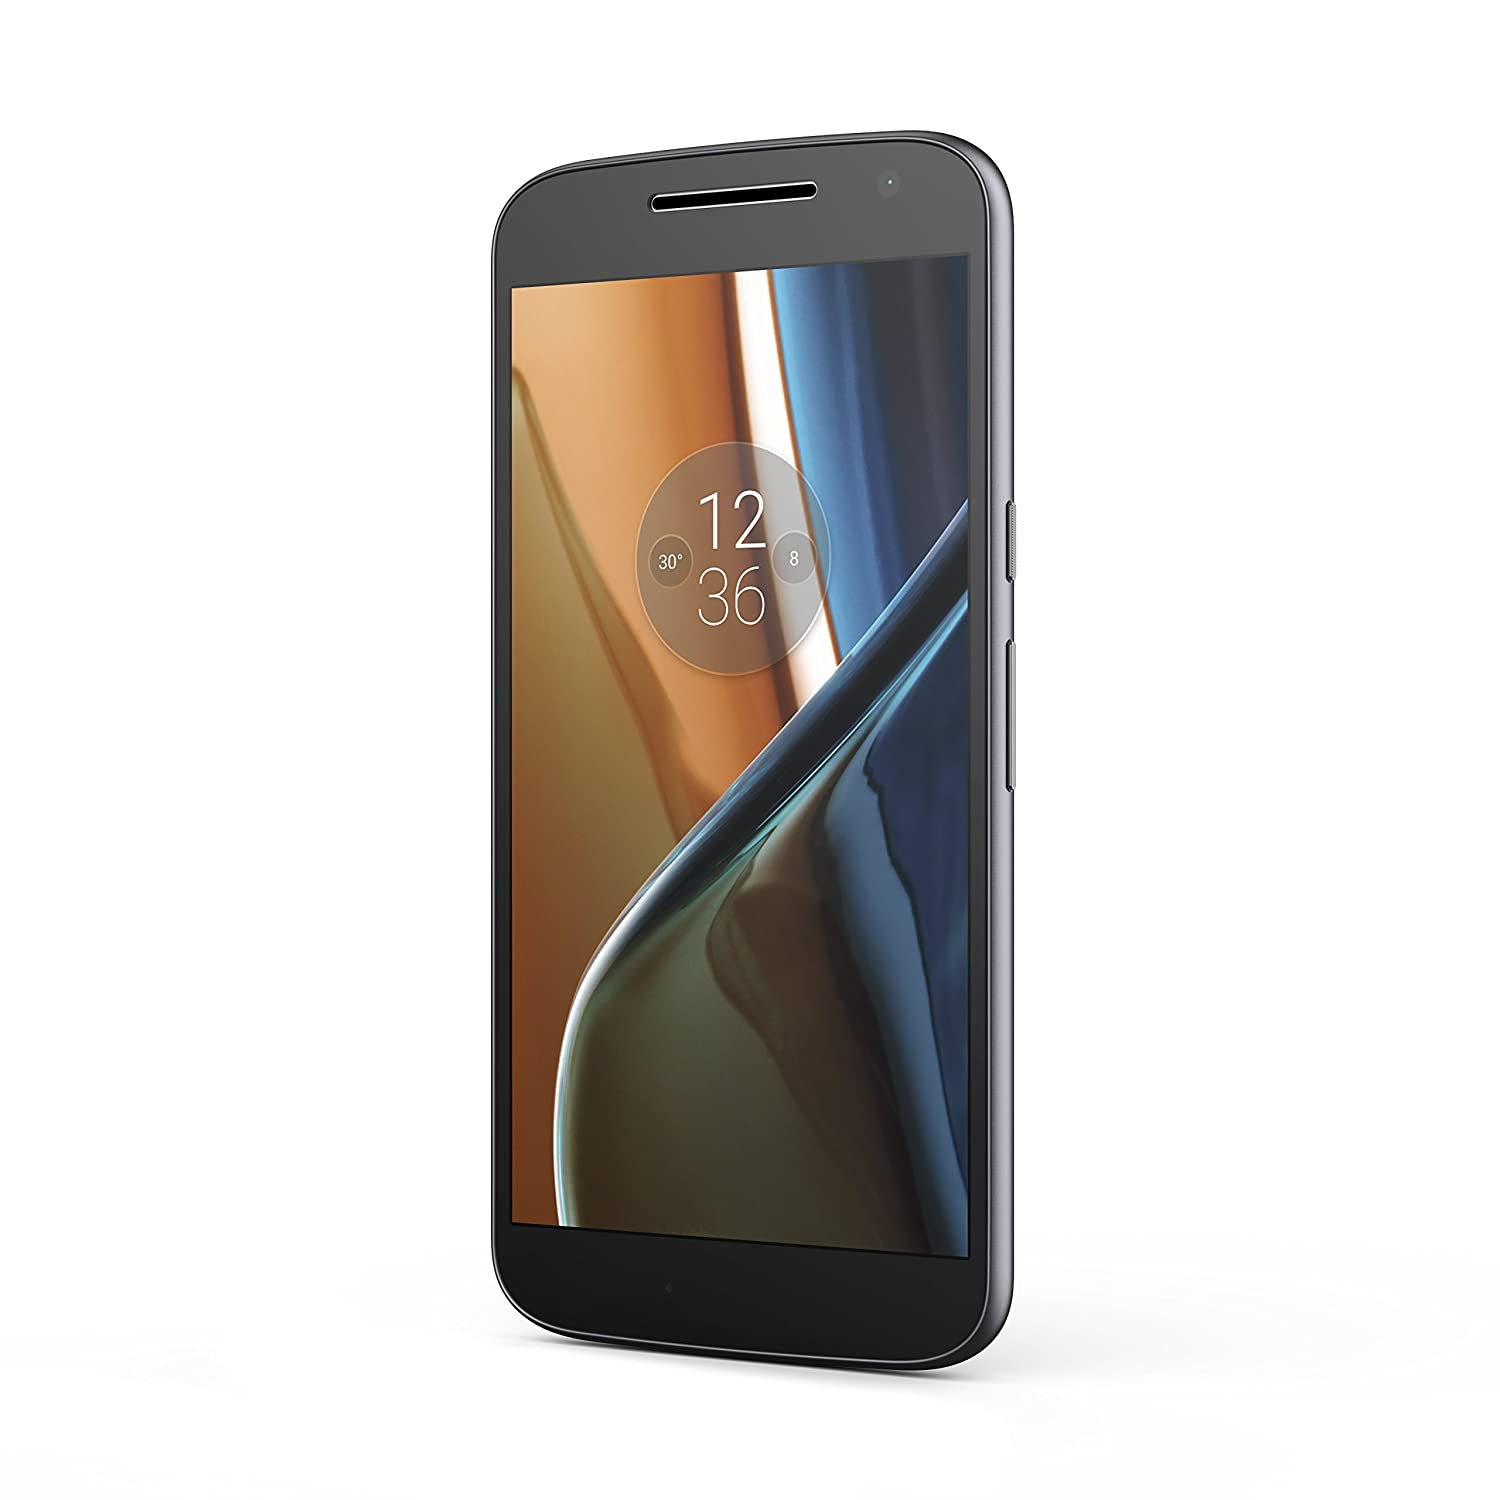 Amazon.com: Moto G (4th Gen.) Unlocked - Black - 16GB: Cell Phones ...